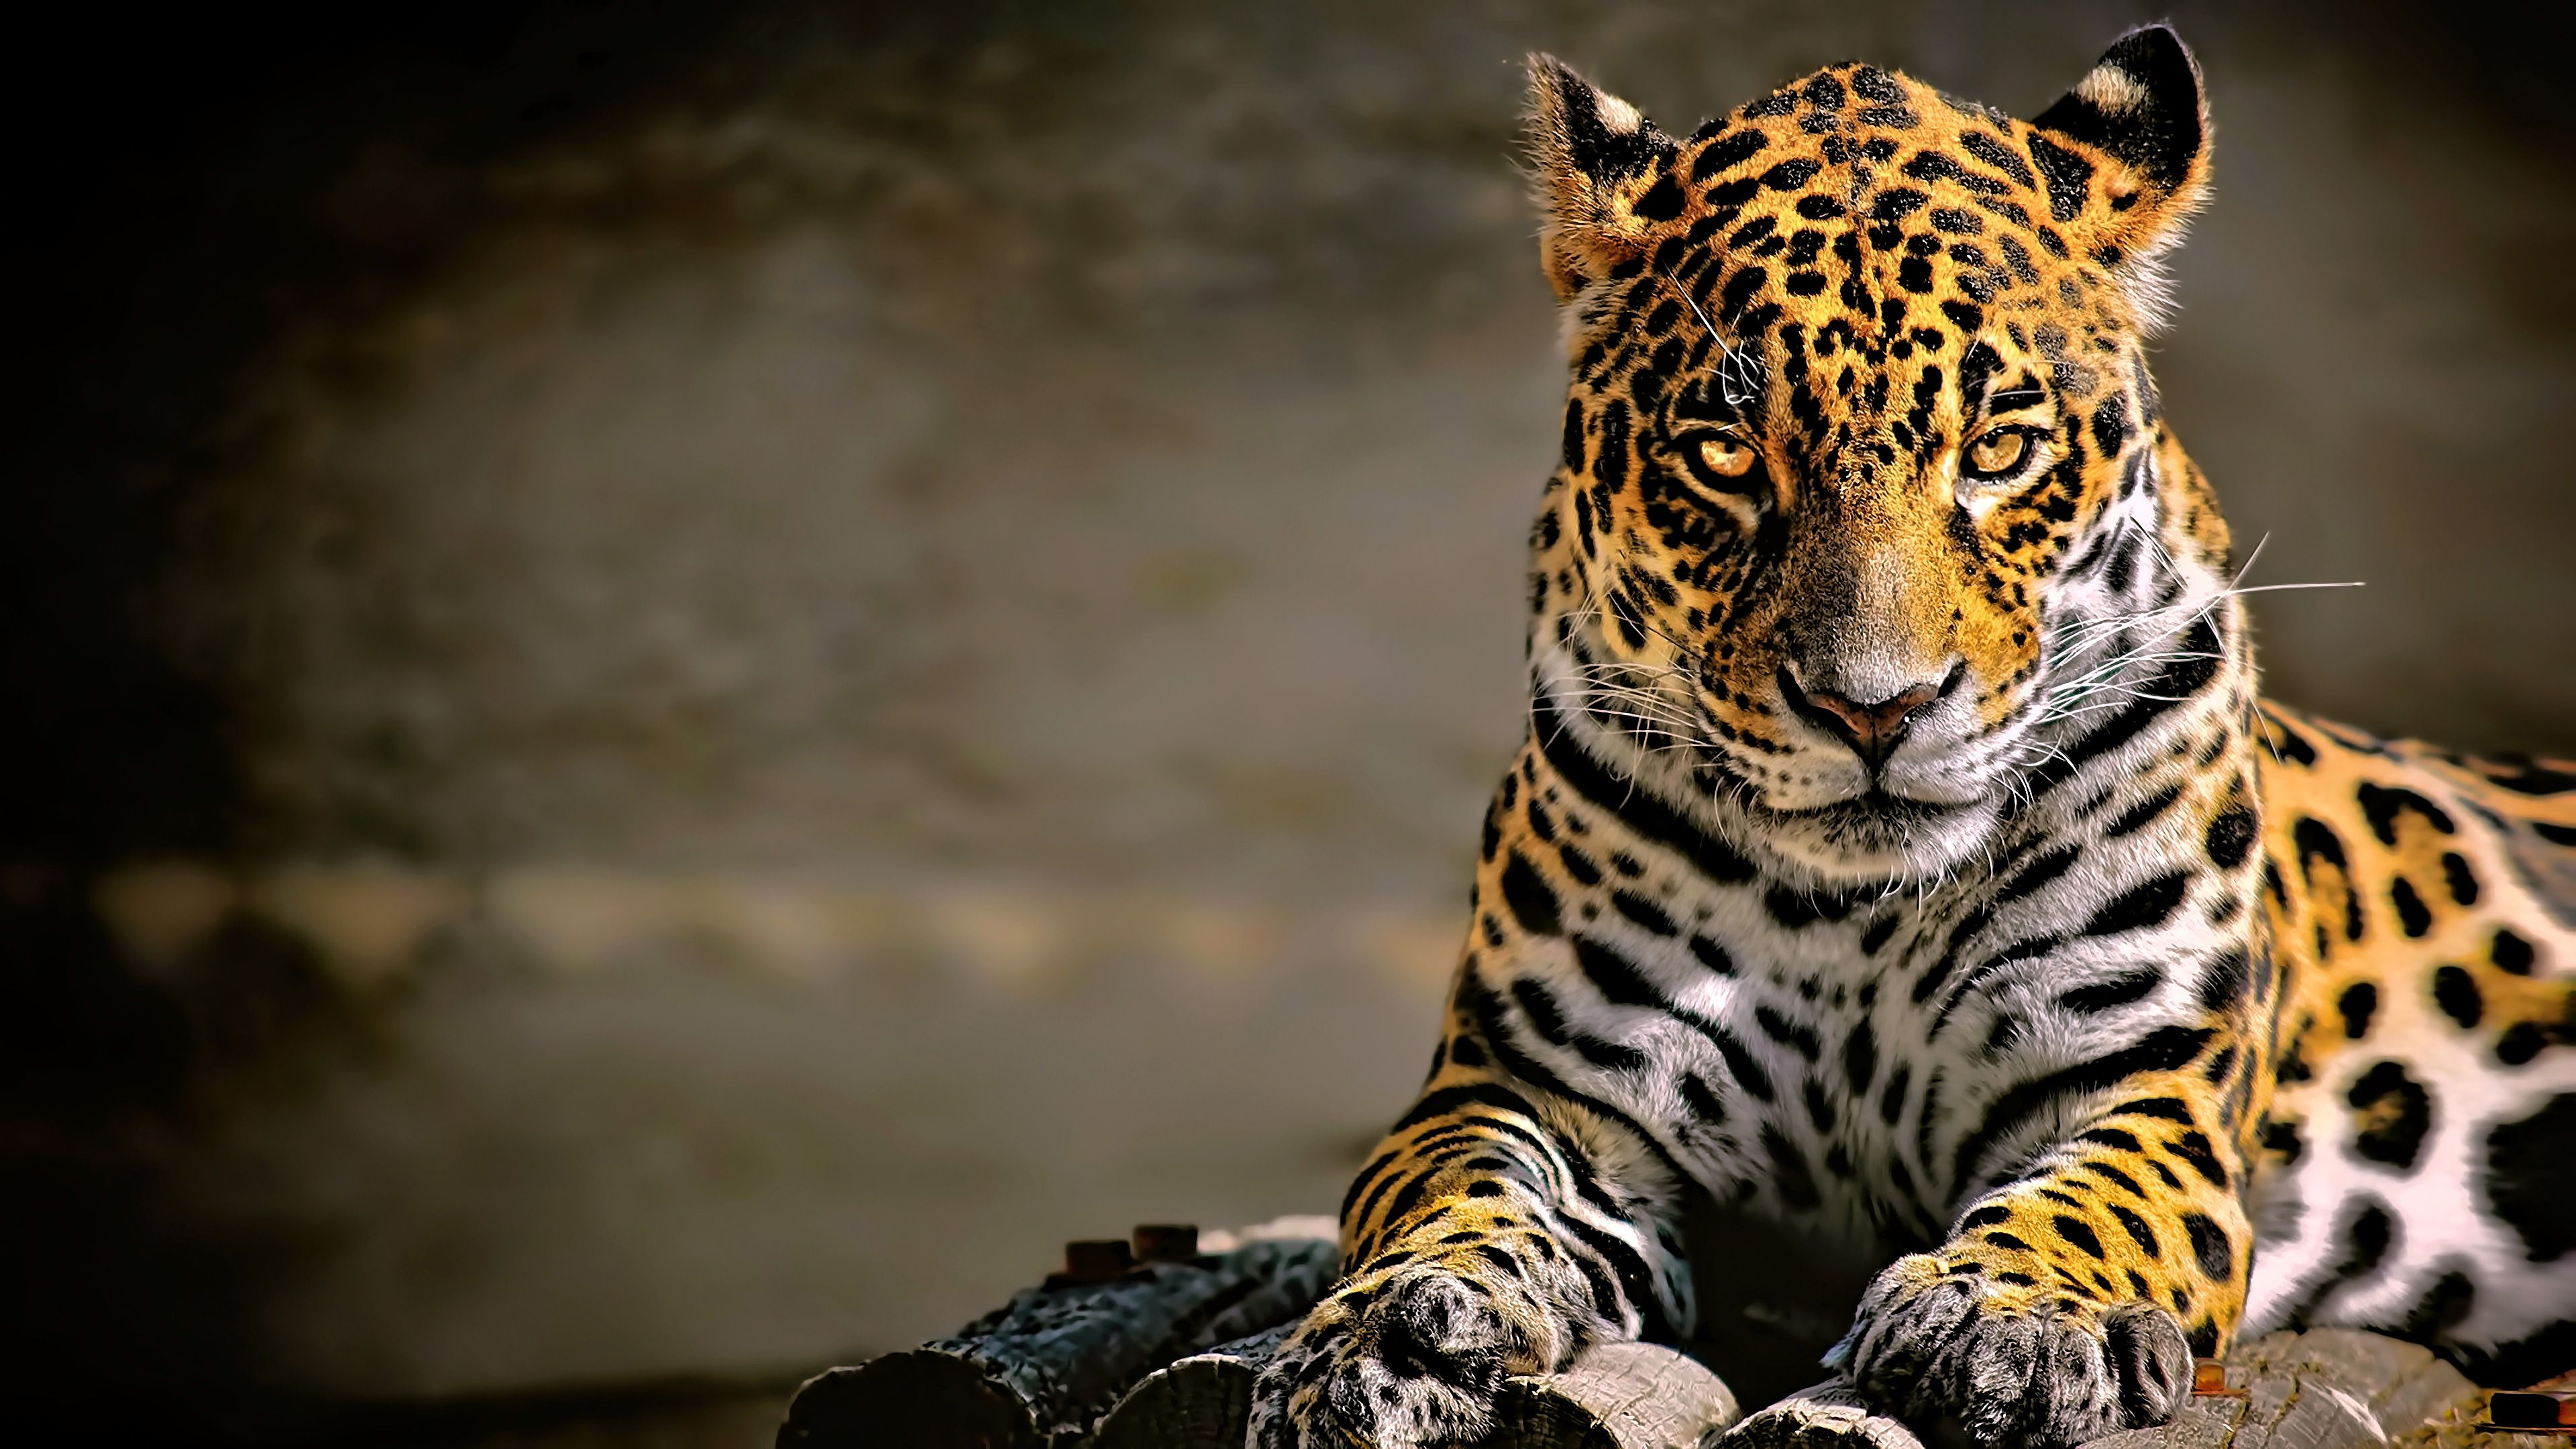 Leopard 4k Glowing Eyes Leopard Wallpapers Hd Wallpapers Animals Wallpapers 4k Wallpapers Jaguar Animal Jaguar Wallpaper Animal Wallpaper